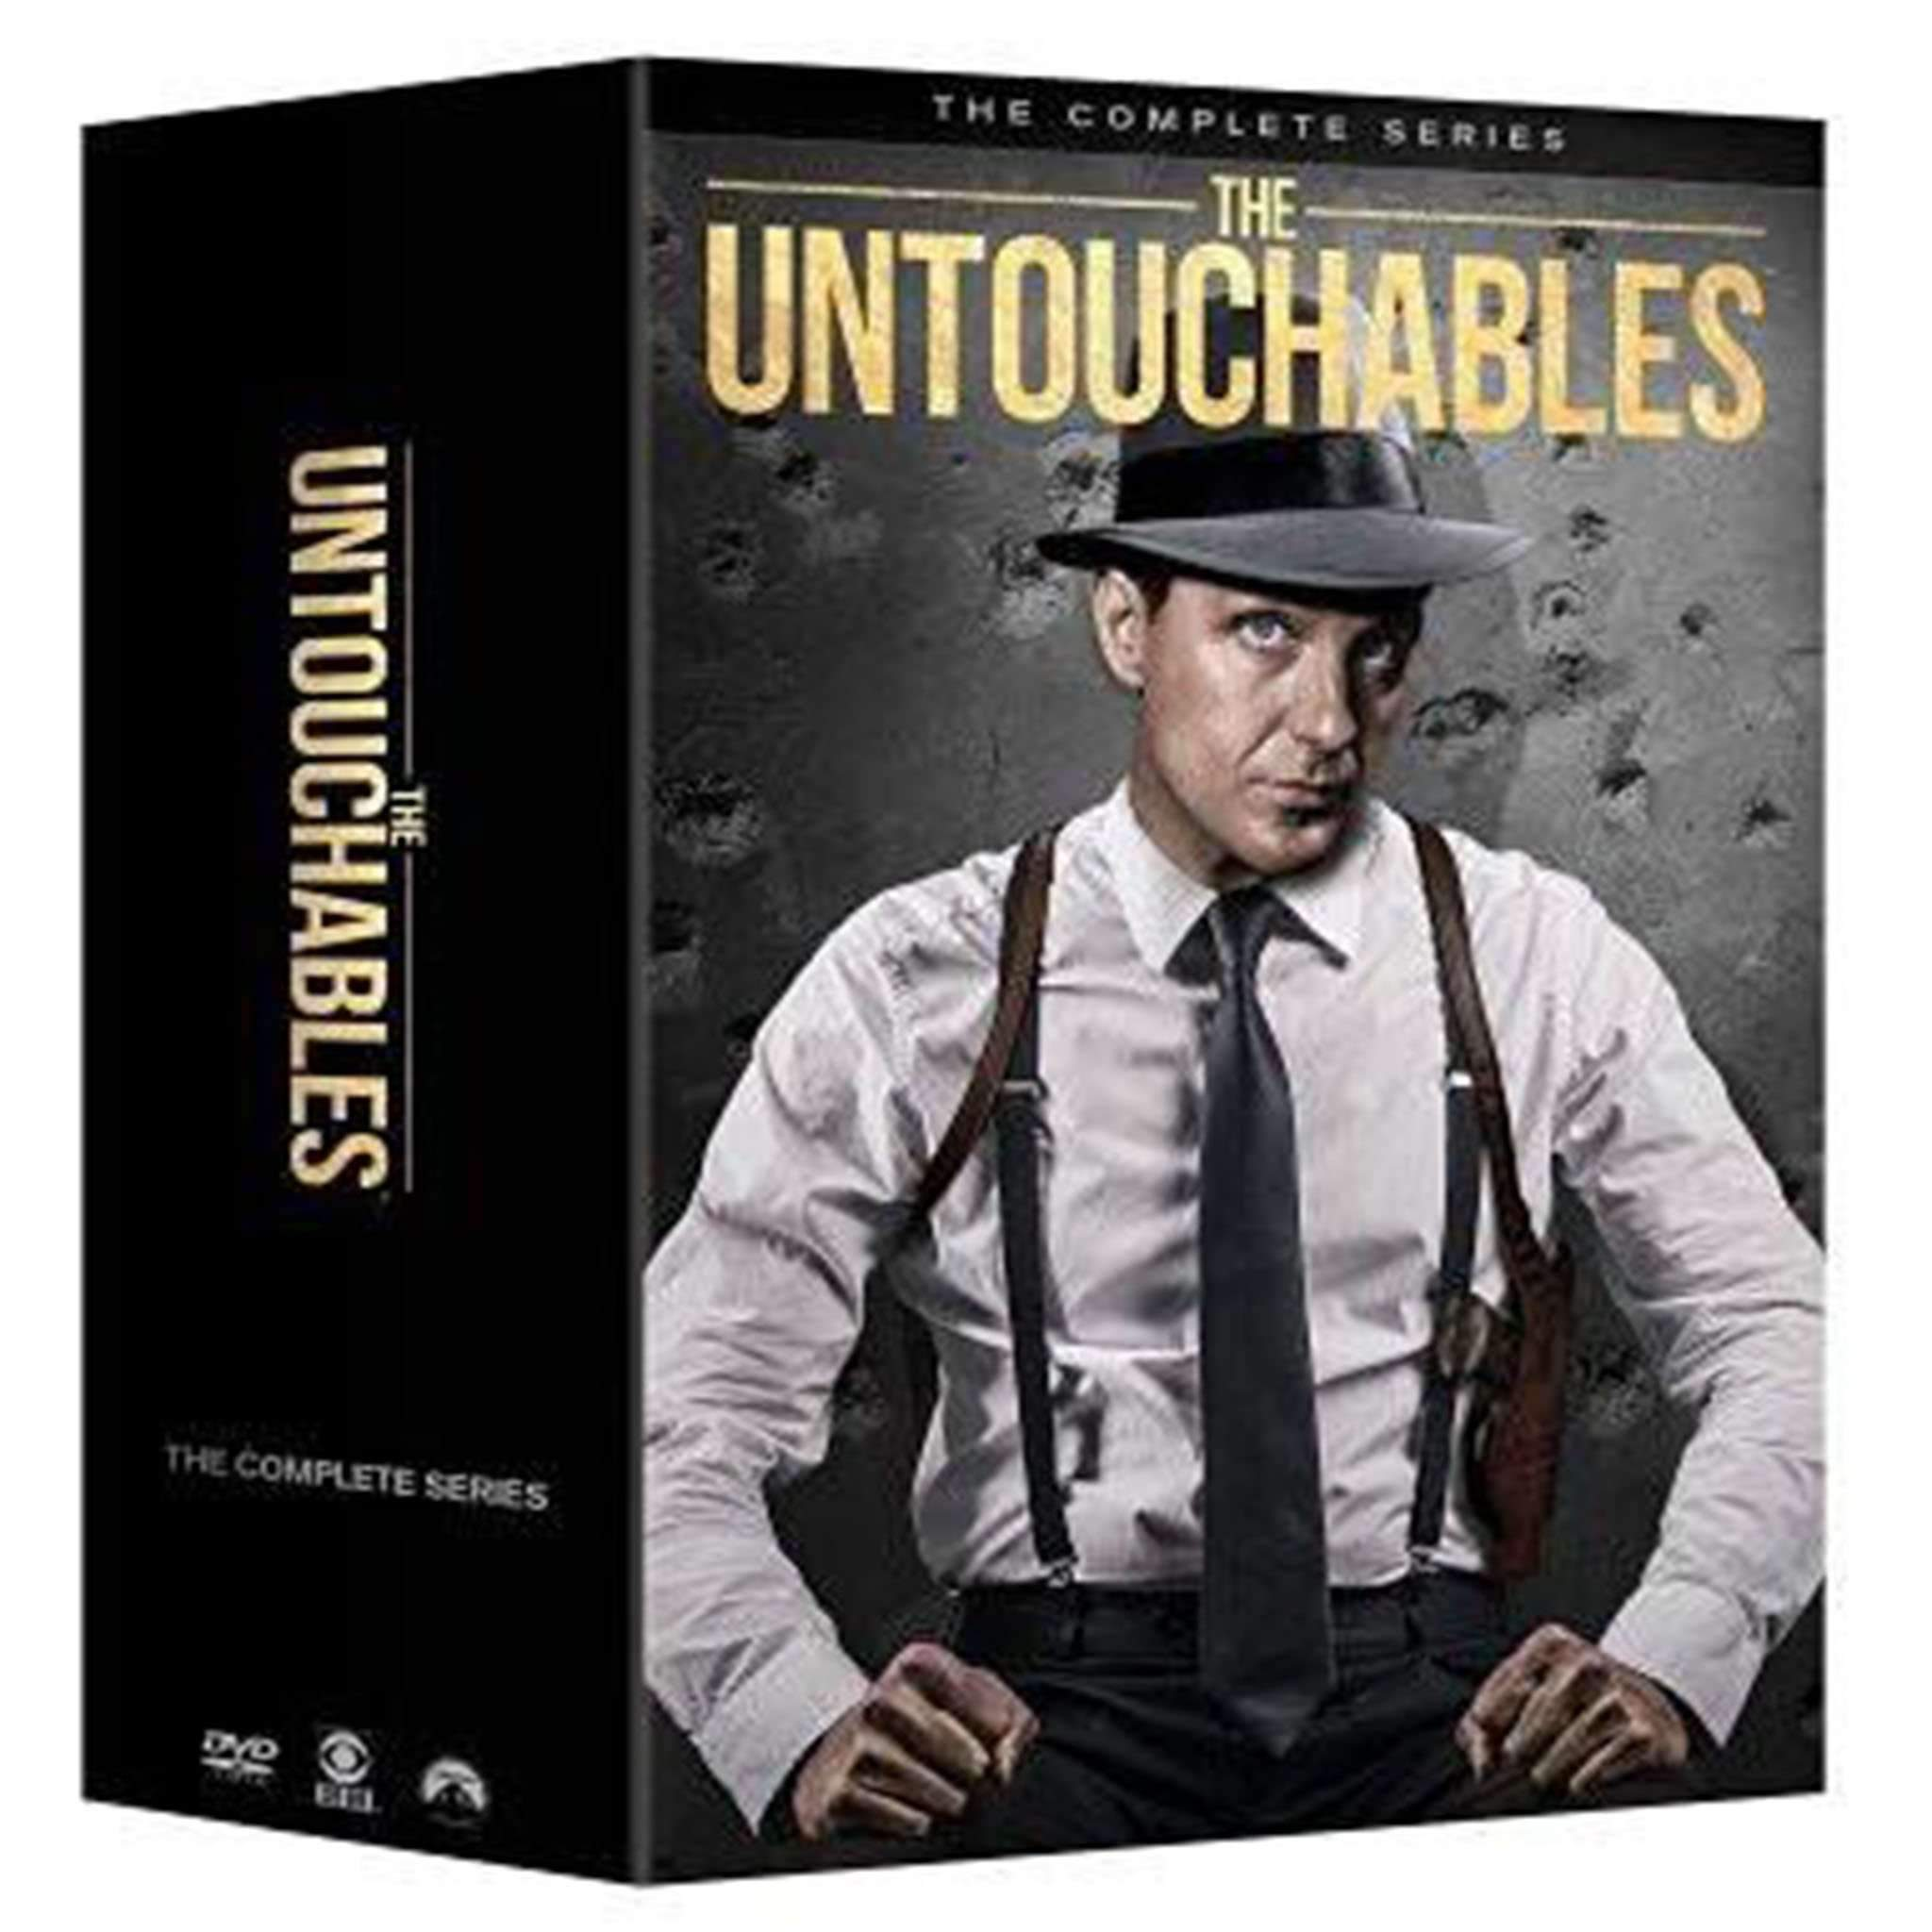 The Untouchables: The Complete Series (DVD) - DVDsHQ